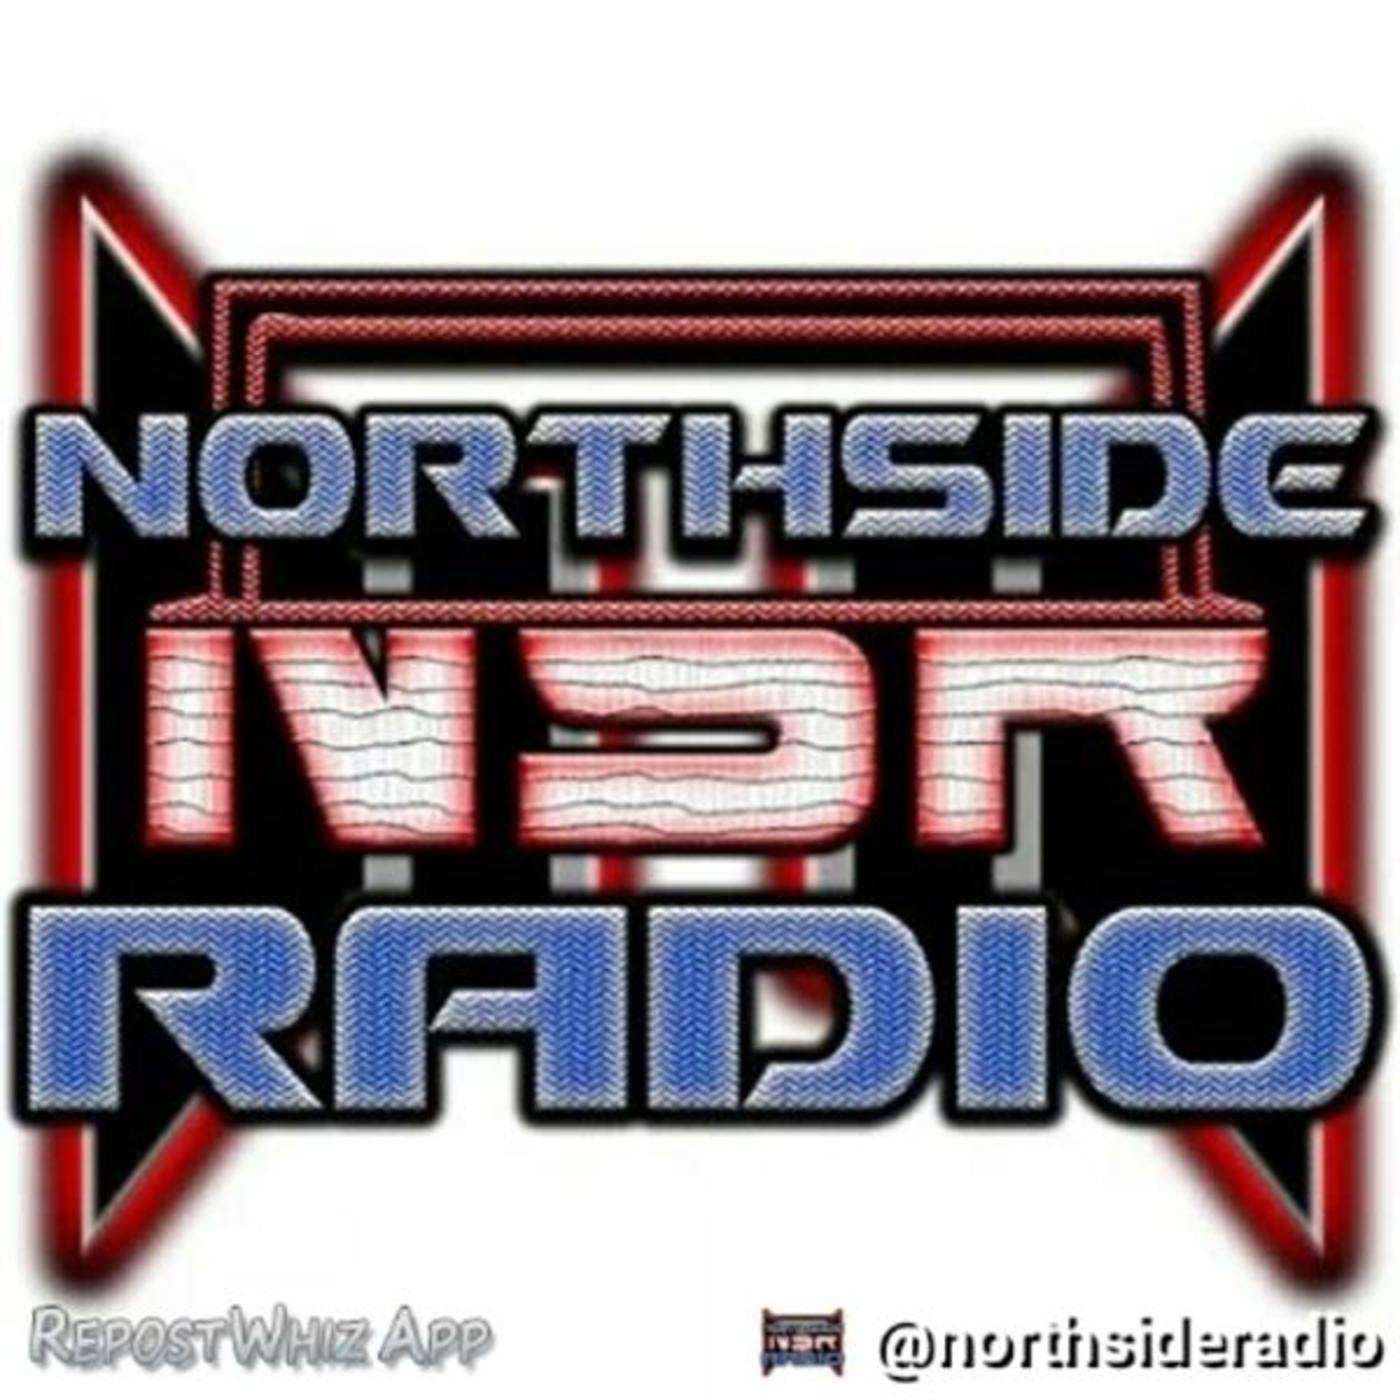 NORTHSIDE RADIO